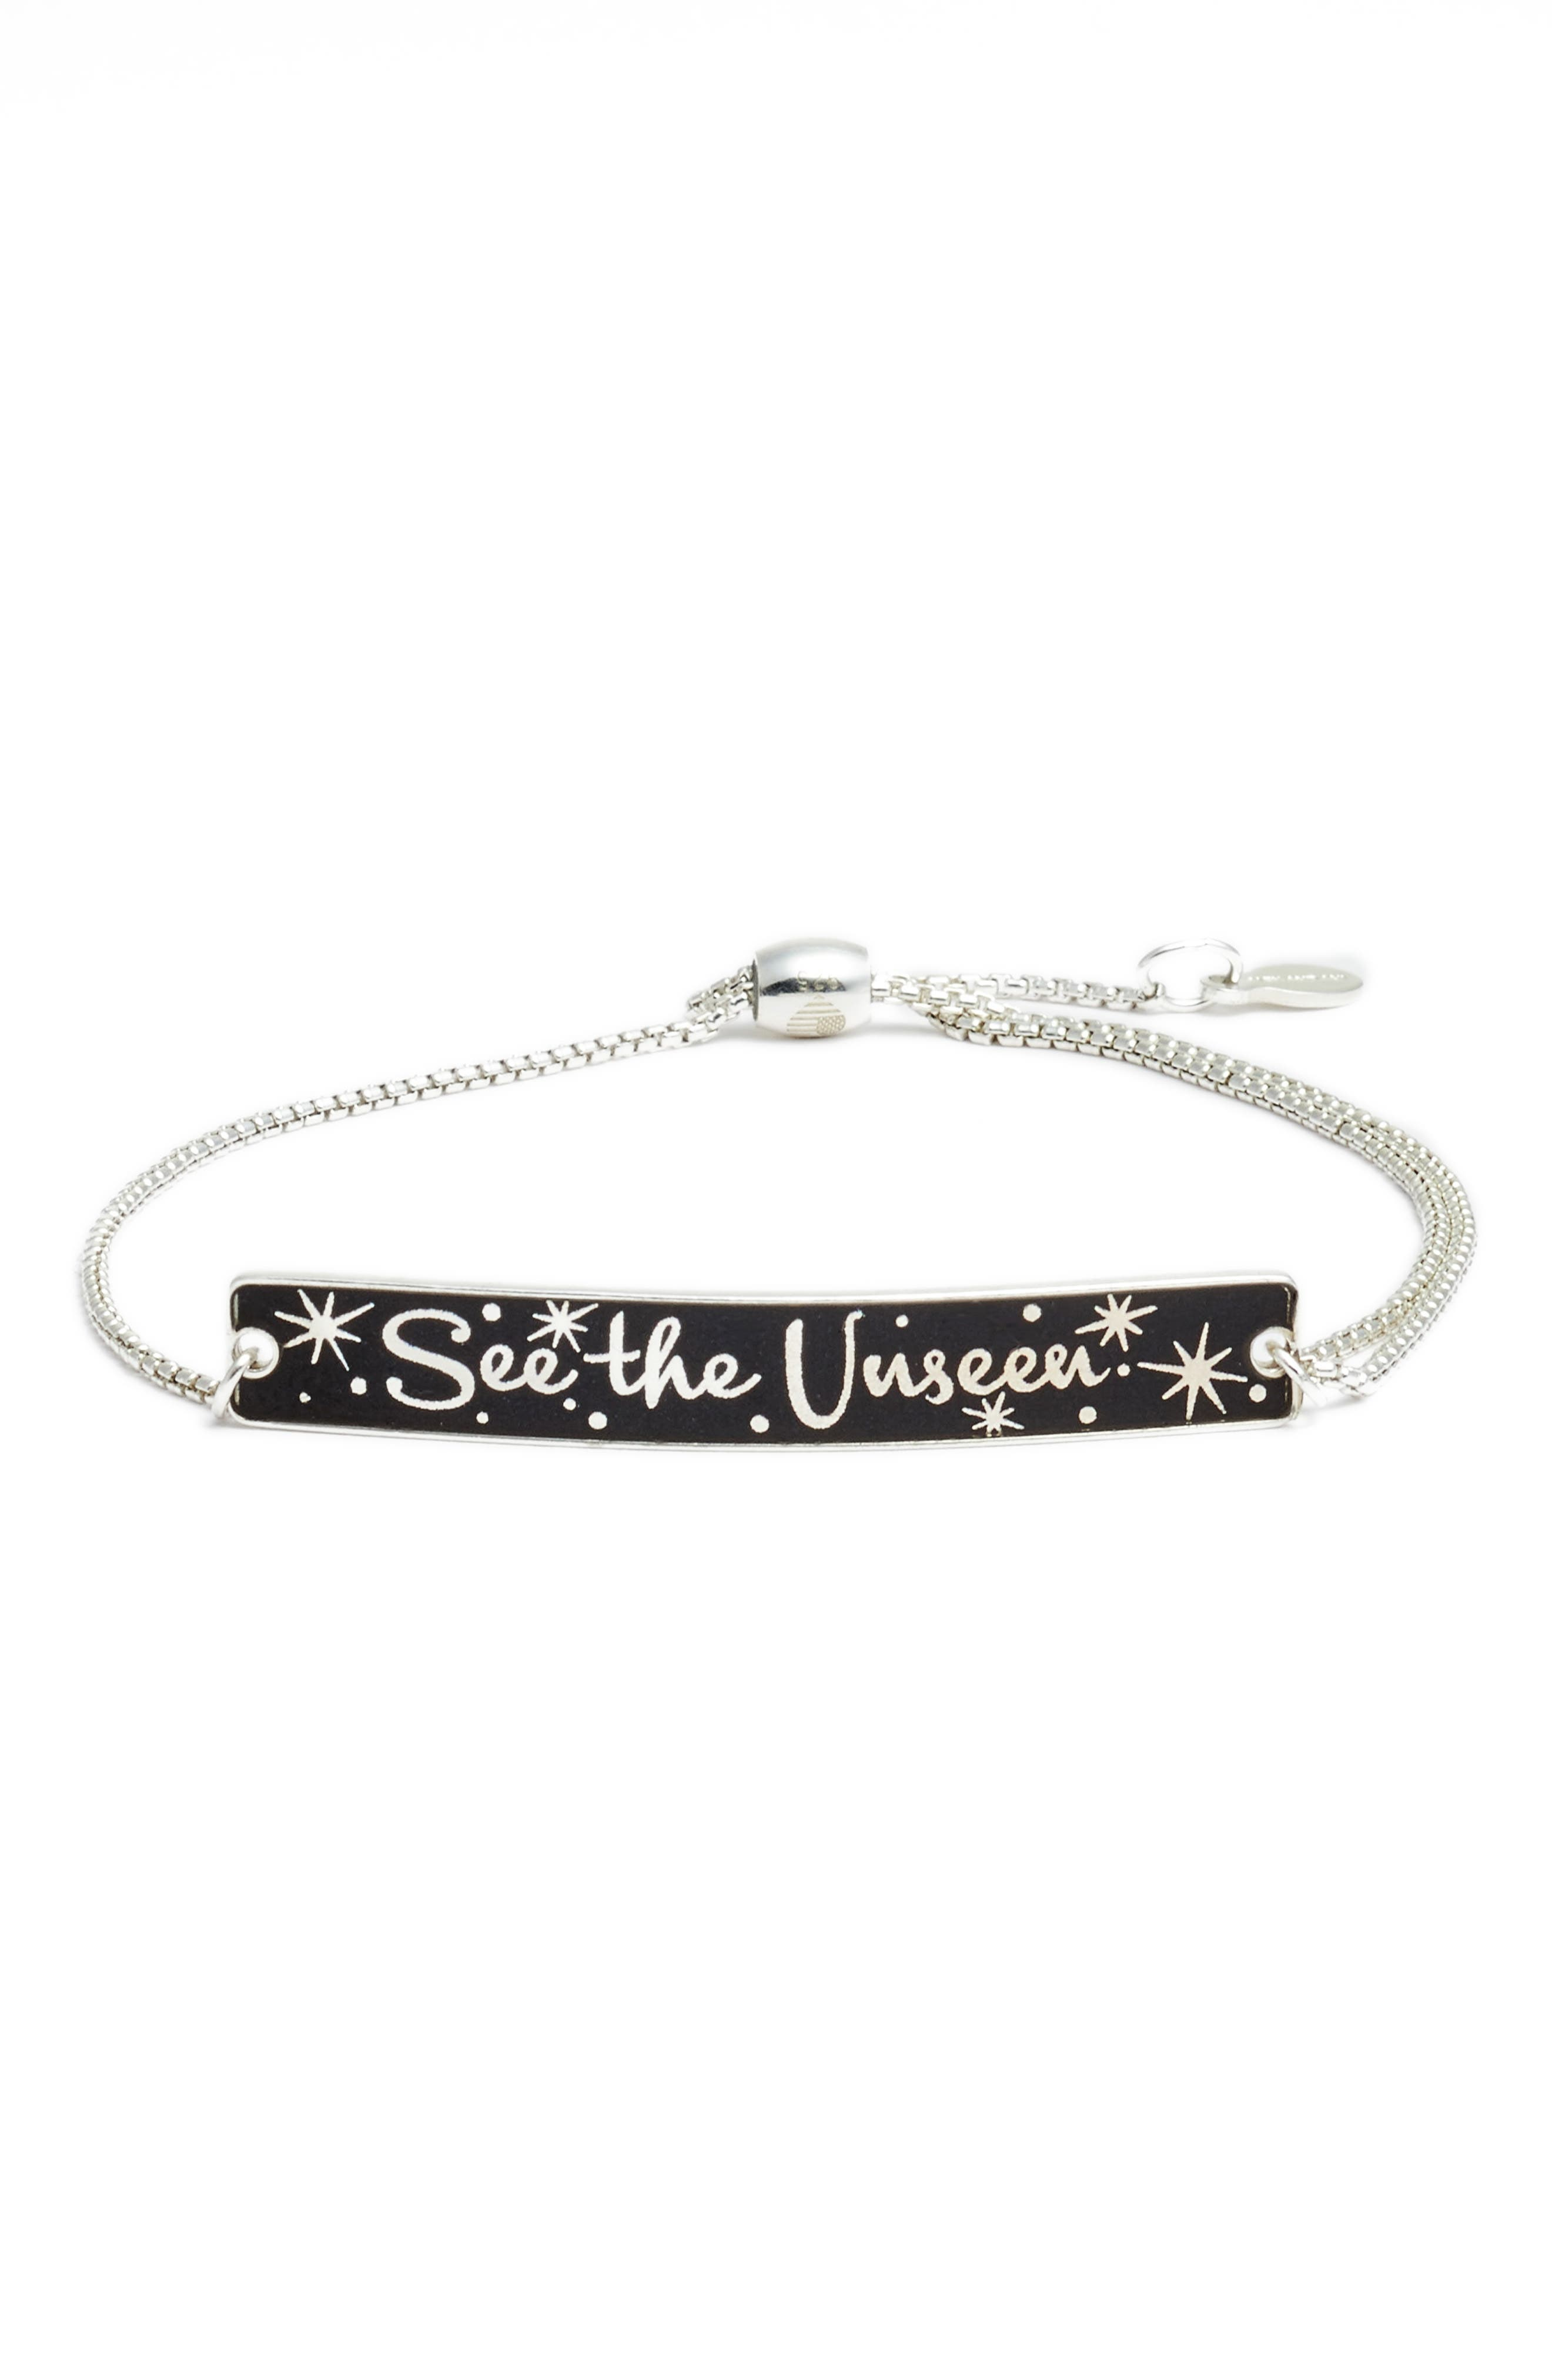 x Disney<sup>®</sup> 'A Wrinkle in Time' See the Unseen Pull-Chain Bracelet,                         Main,                         color, Silver